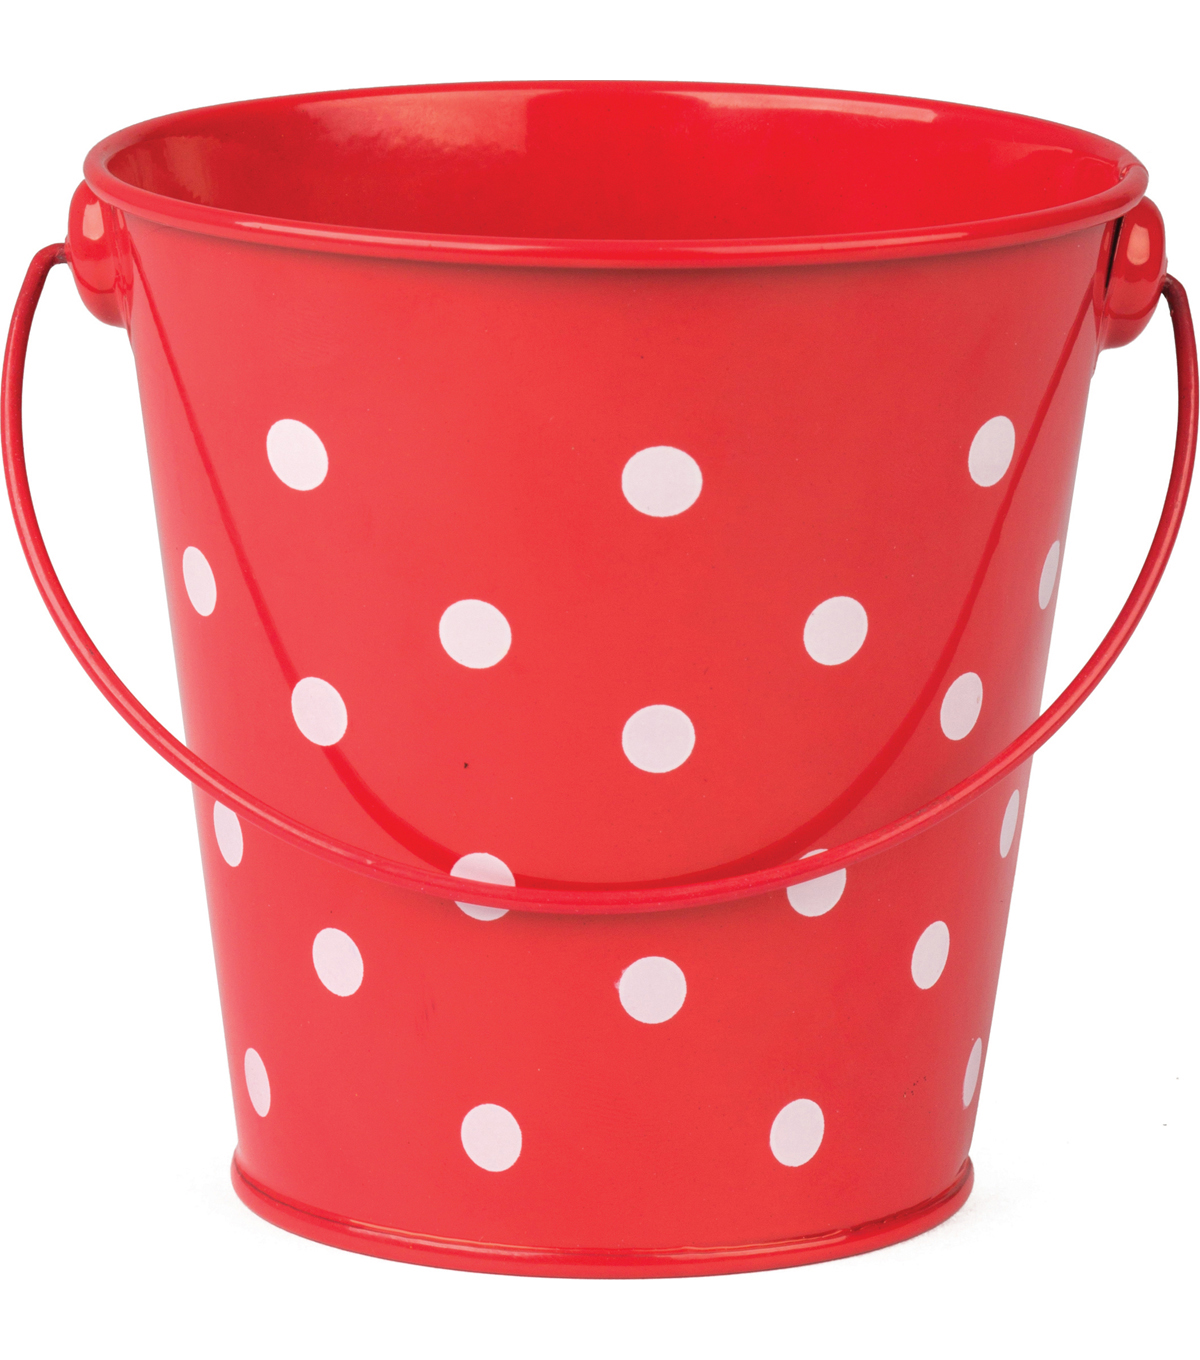 Teacher Created Resources Polka Dots Bucket, Red, Pack of 6